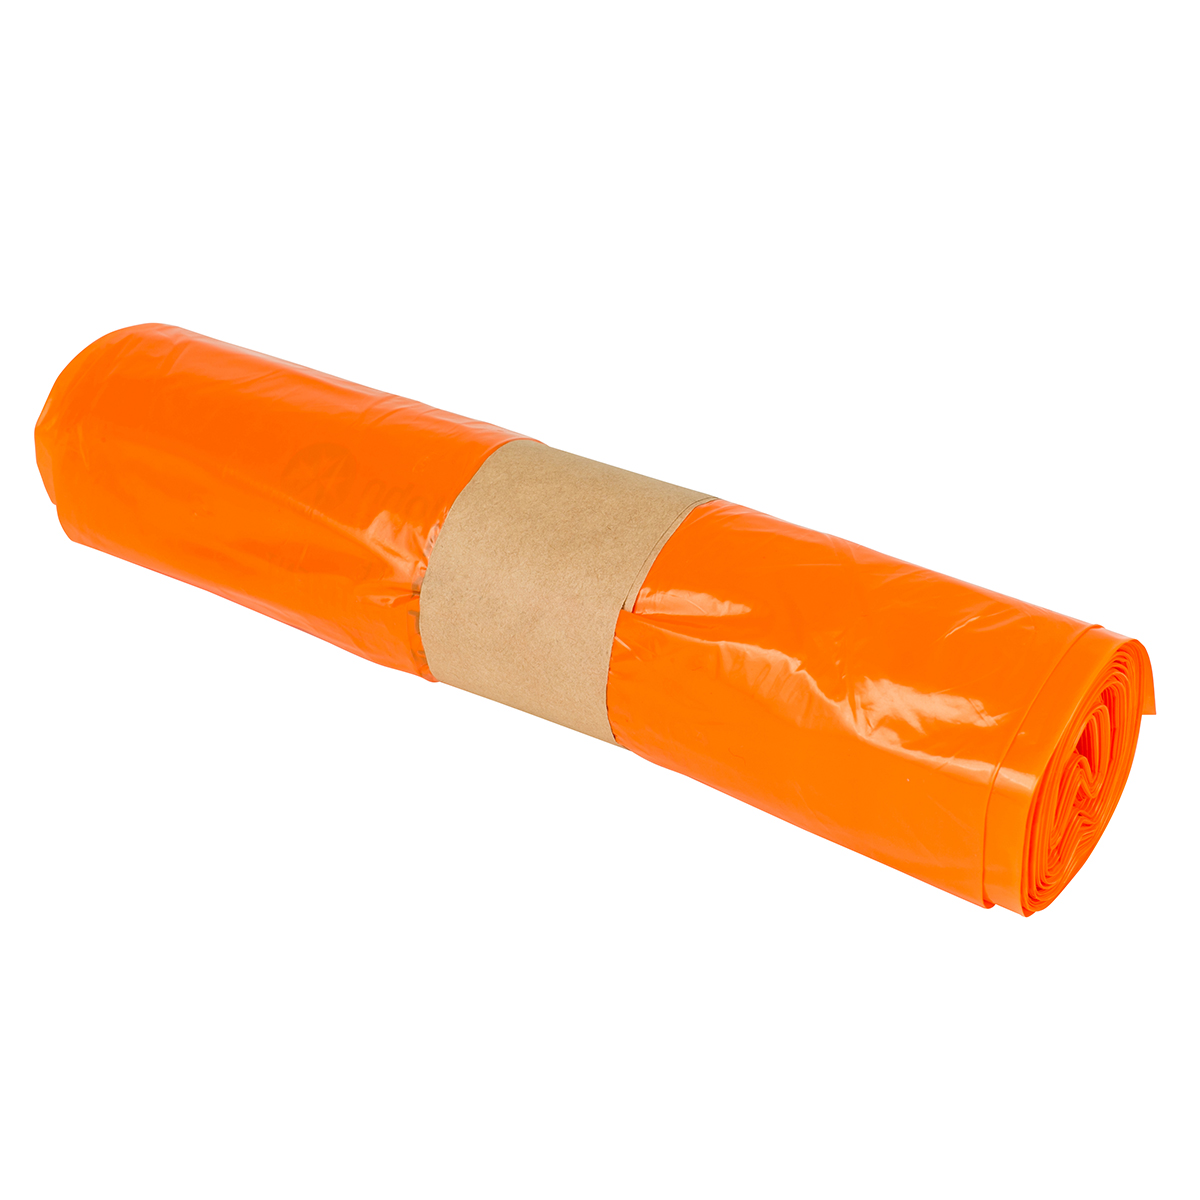 Pack of 25 24cm x 44.5cm x 65.5cm Orange Clinical Waste Bags